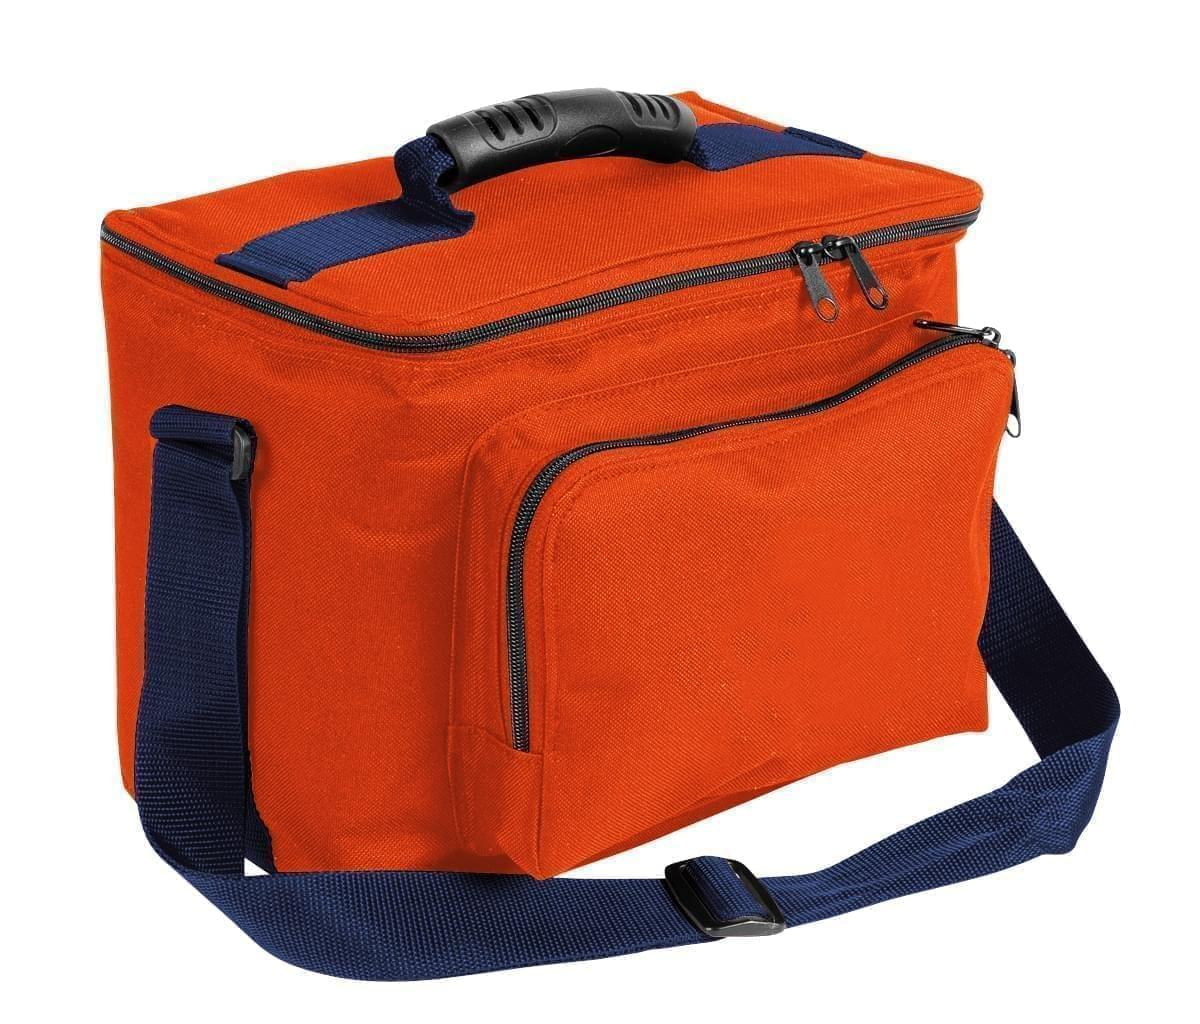 USA Made Nylon Poly Lunch Coolers, Orange-Navy, 11001161-AXZ